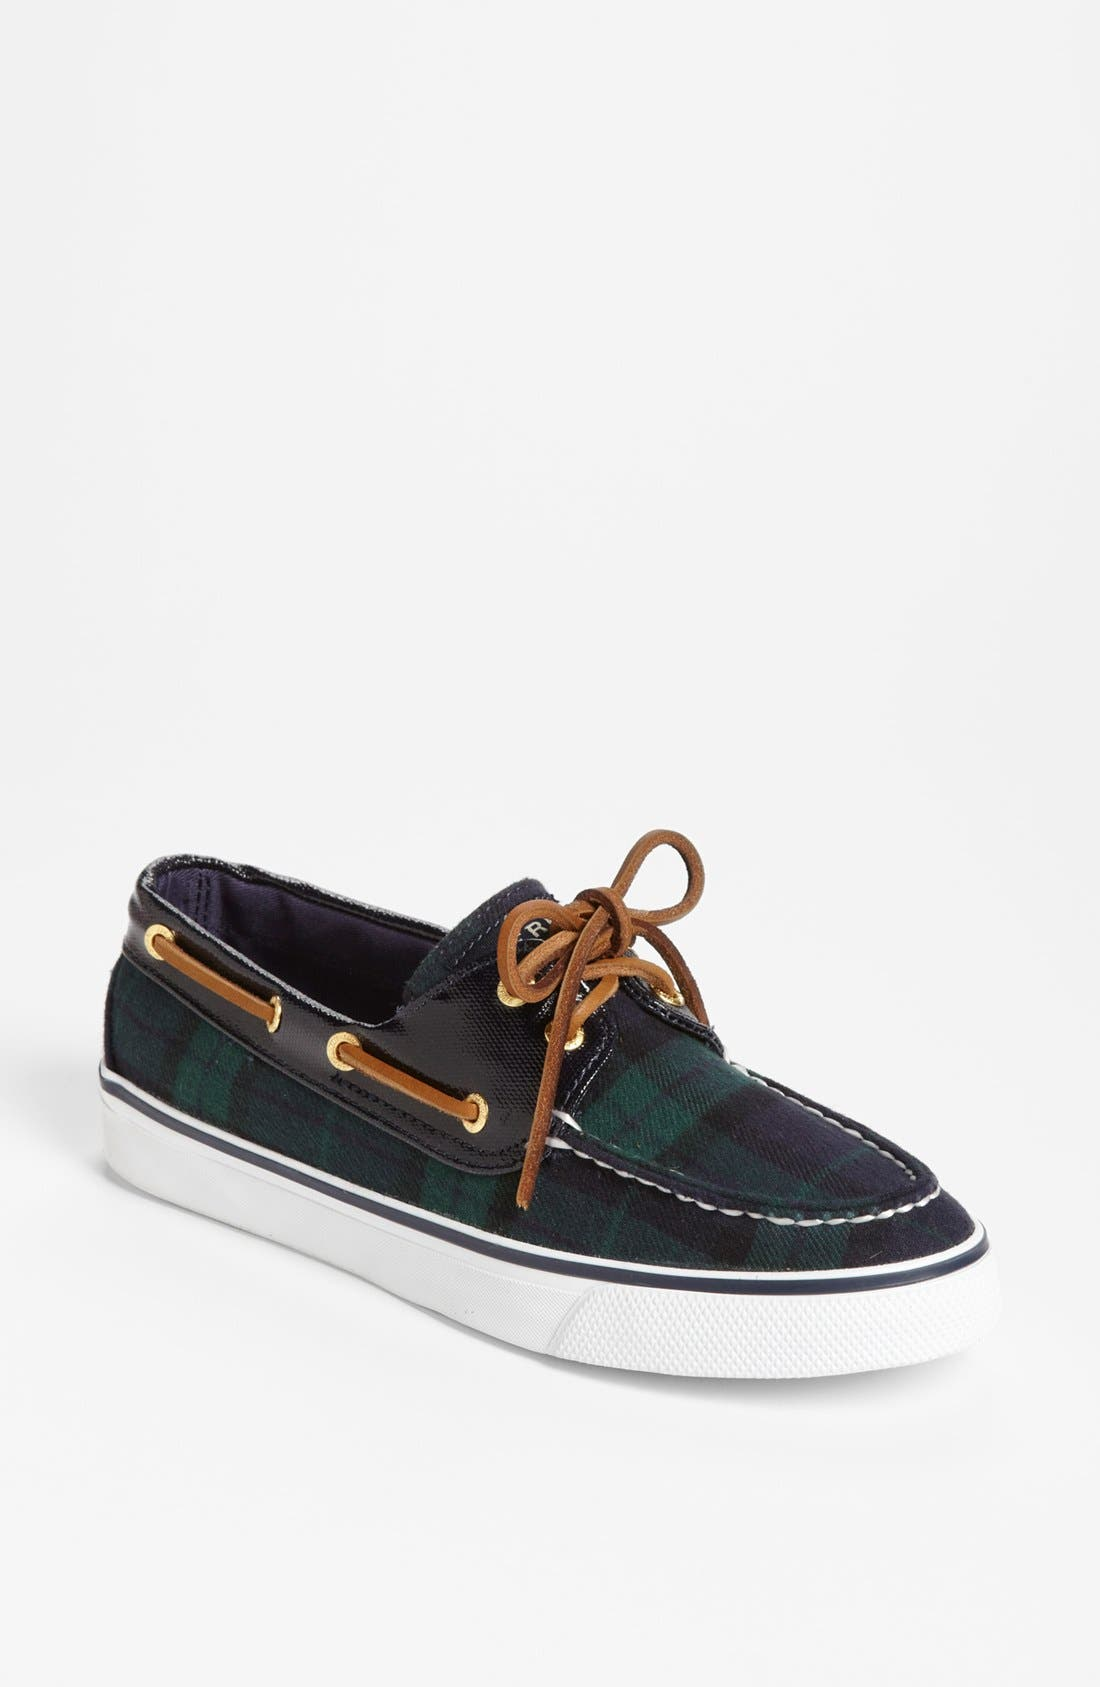 Top-Sider<sup>®</sup> 'Bahama' Sequined Boat Shoe,                             Main thumbnail 29, color,